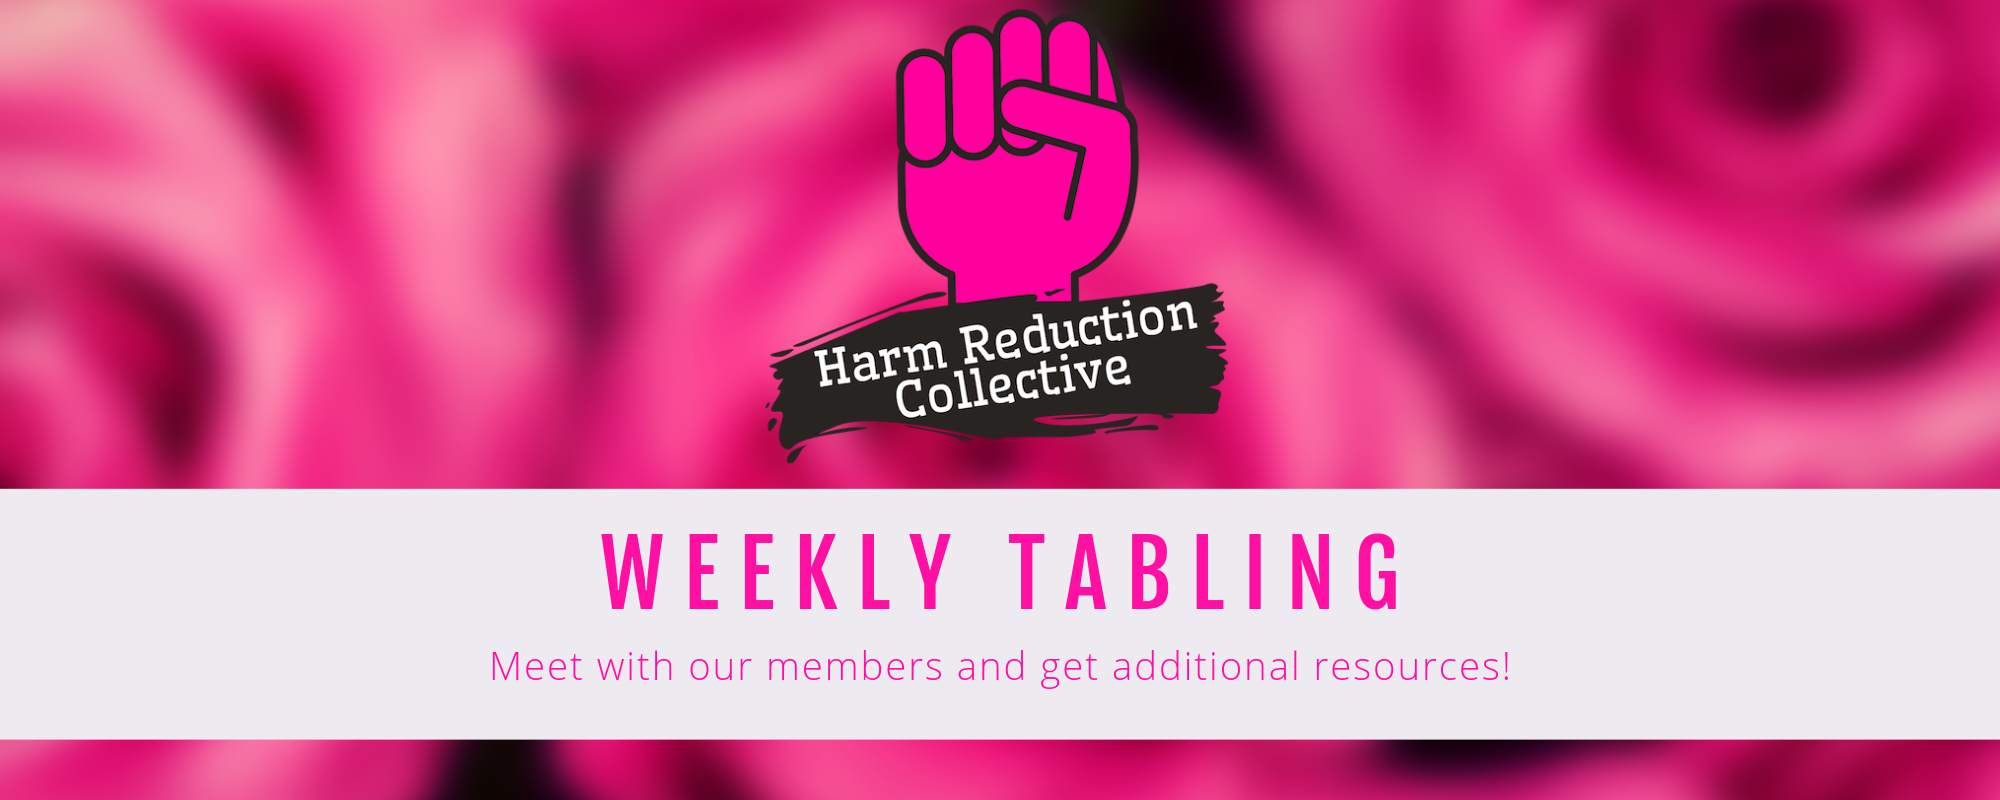 Harm Reduction Banner 2.png